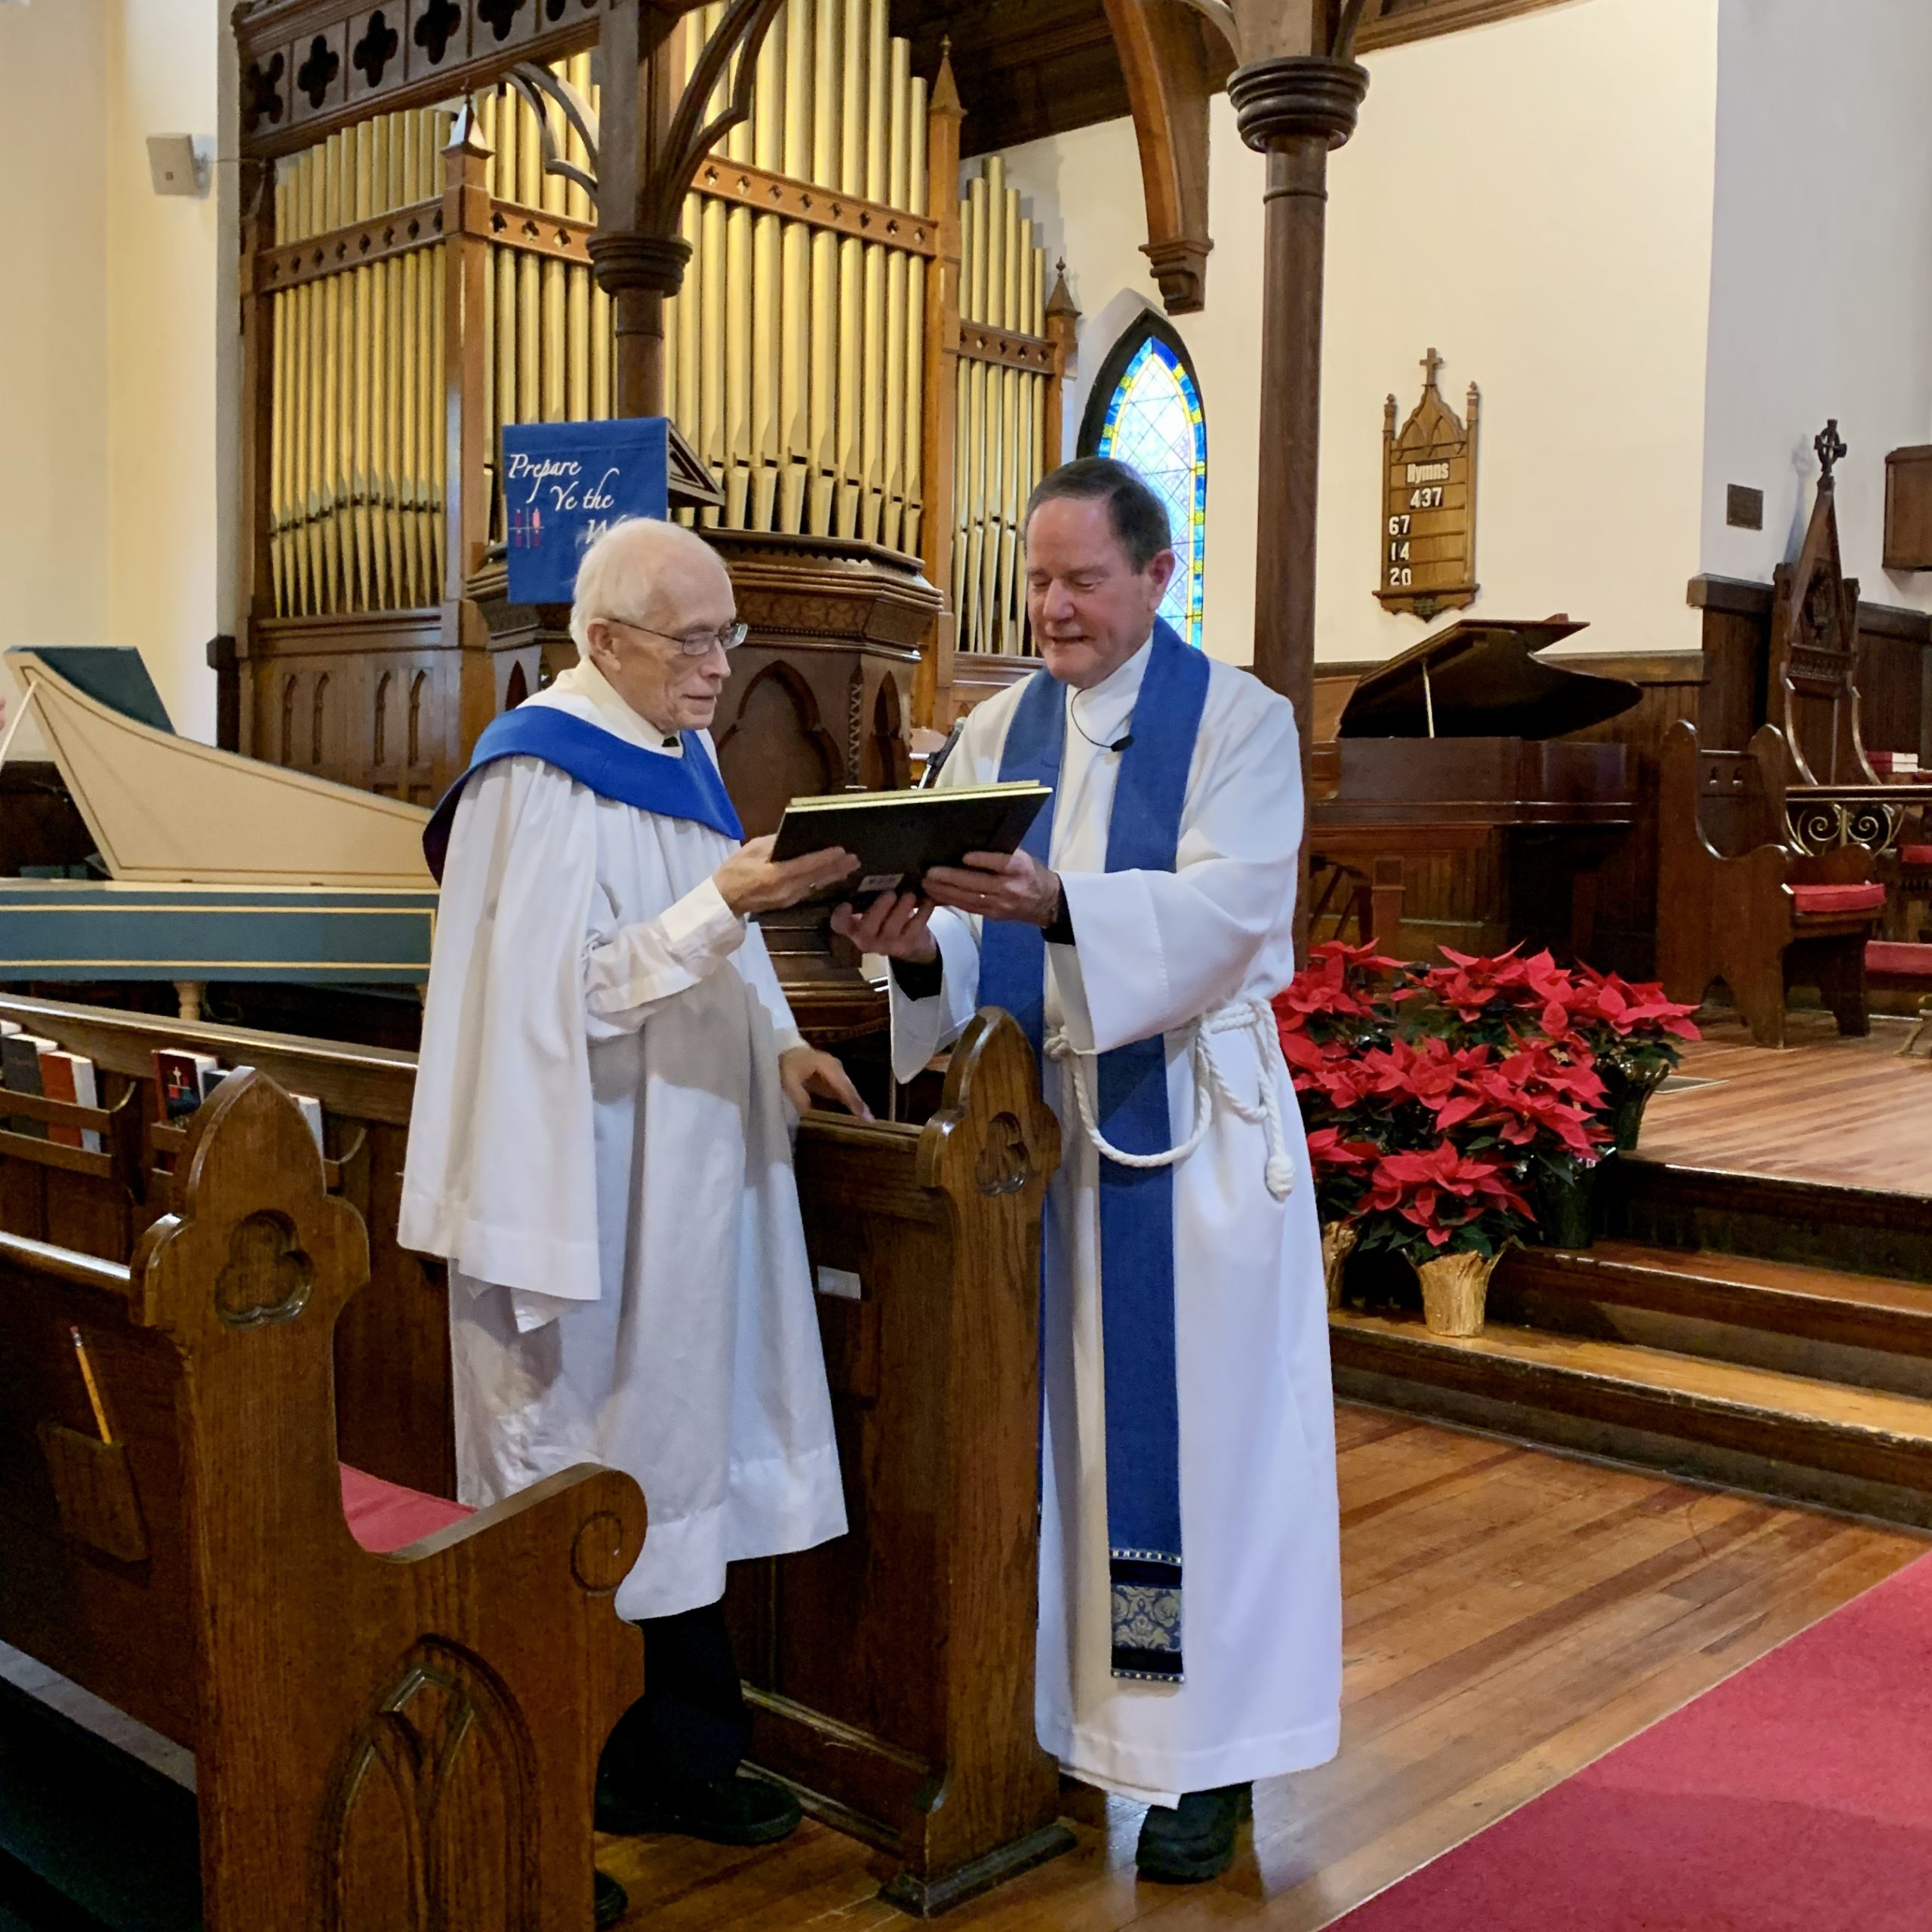 Rector Jerry Prickett recognizes Ron Lambe for his decades of service to St. Matthias.